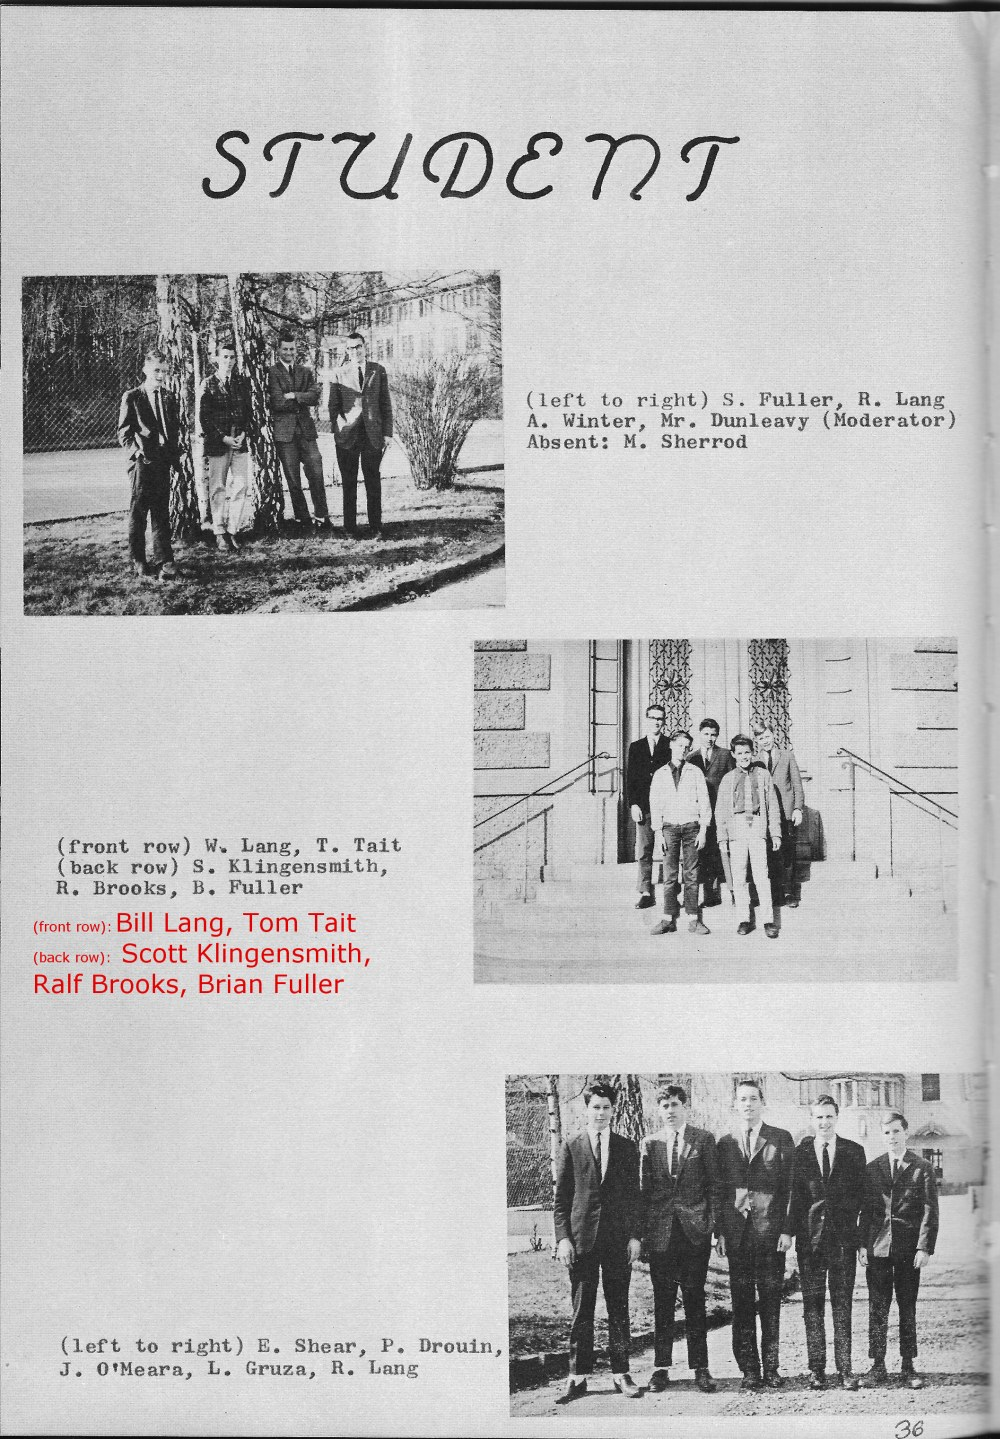 Student Council  PHOTOs 1  for Villa Saint Jean International School  1965 Yearbook Le Chamois